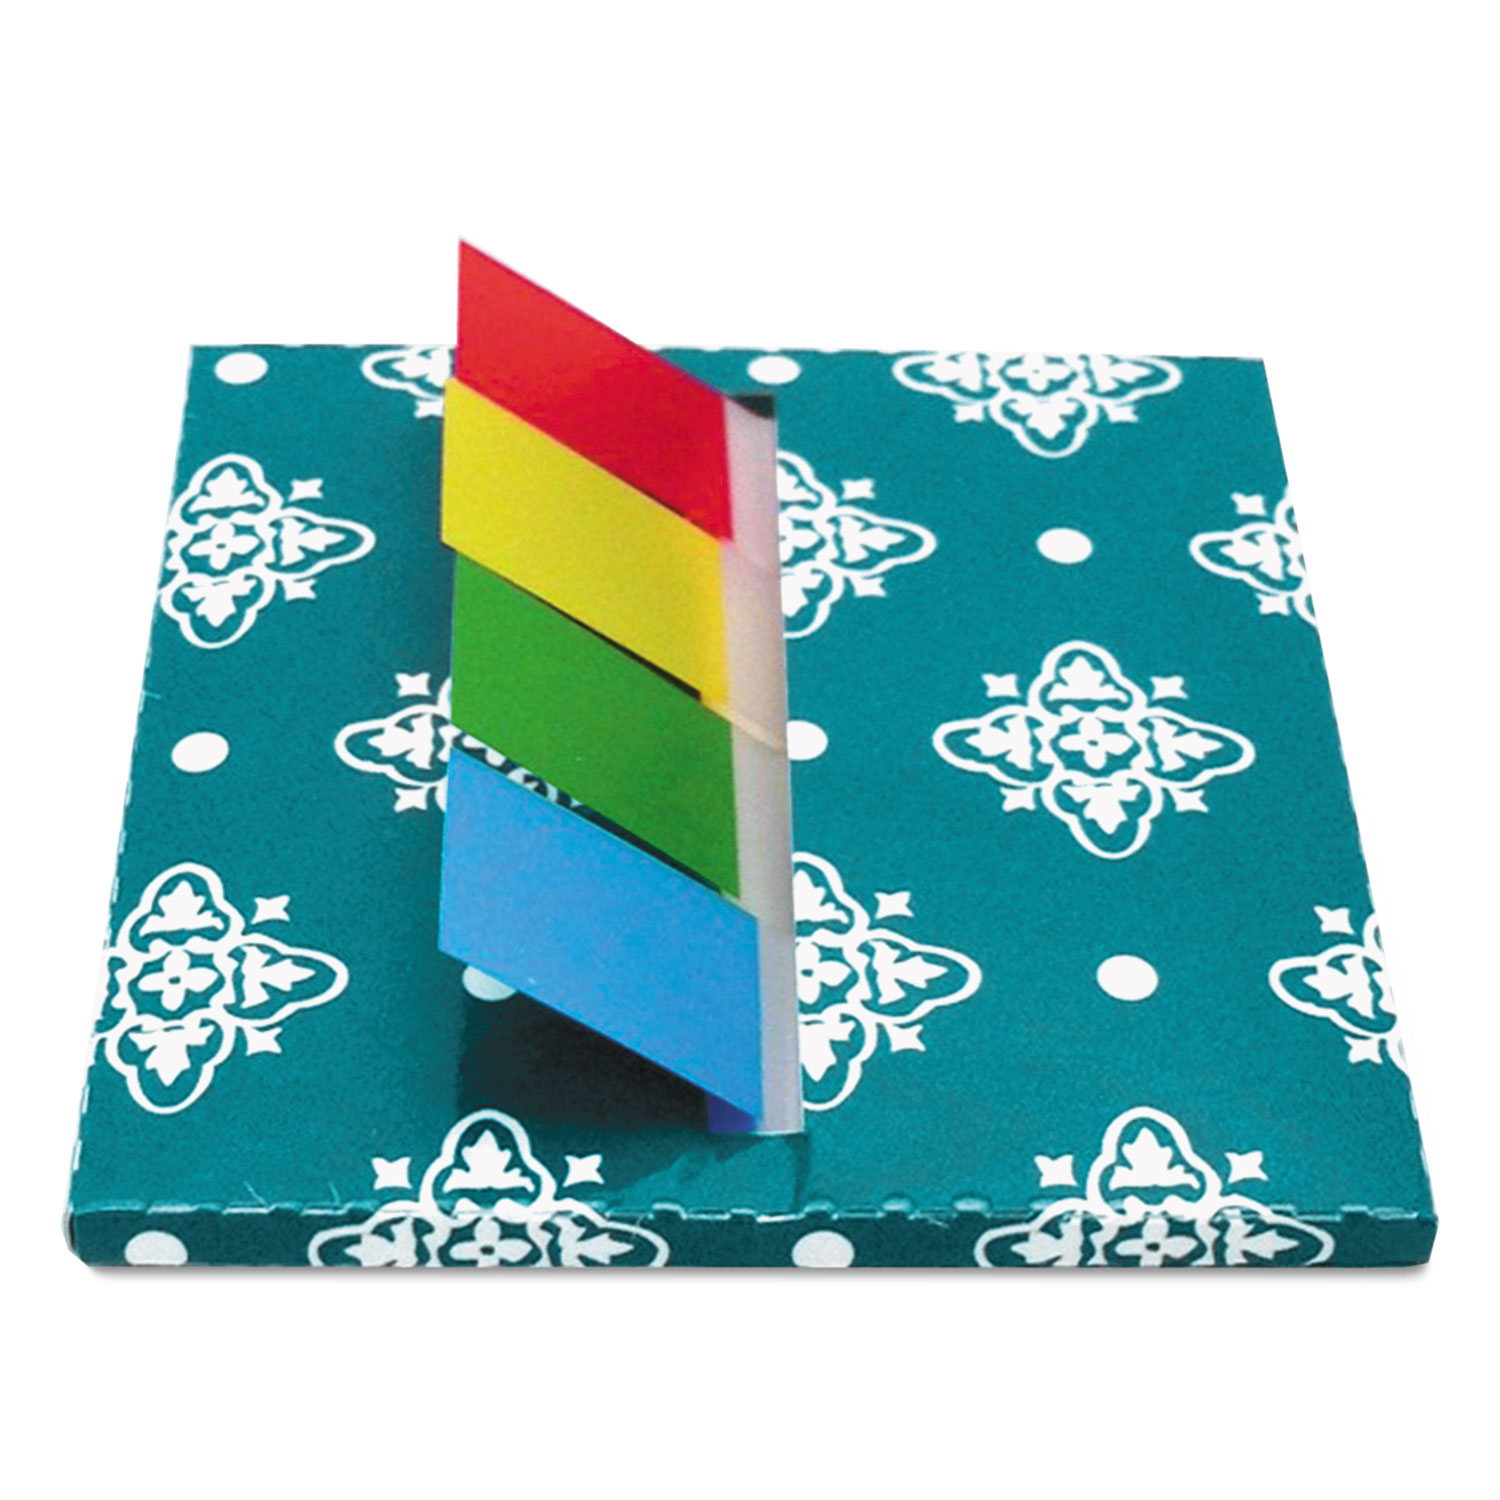 Teal Designer Pop-Up Flag Dispenser, 4 Pads of 35 Flags Each